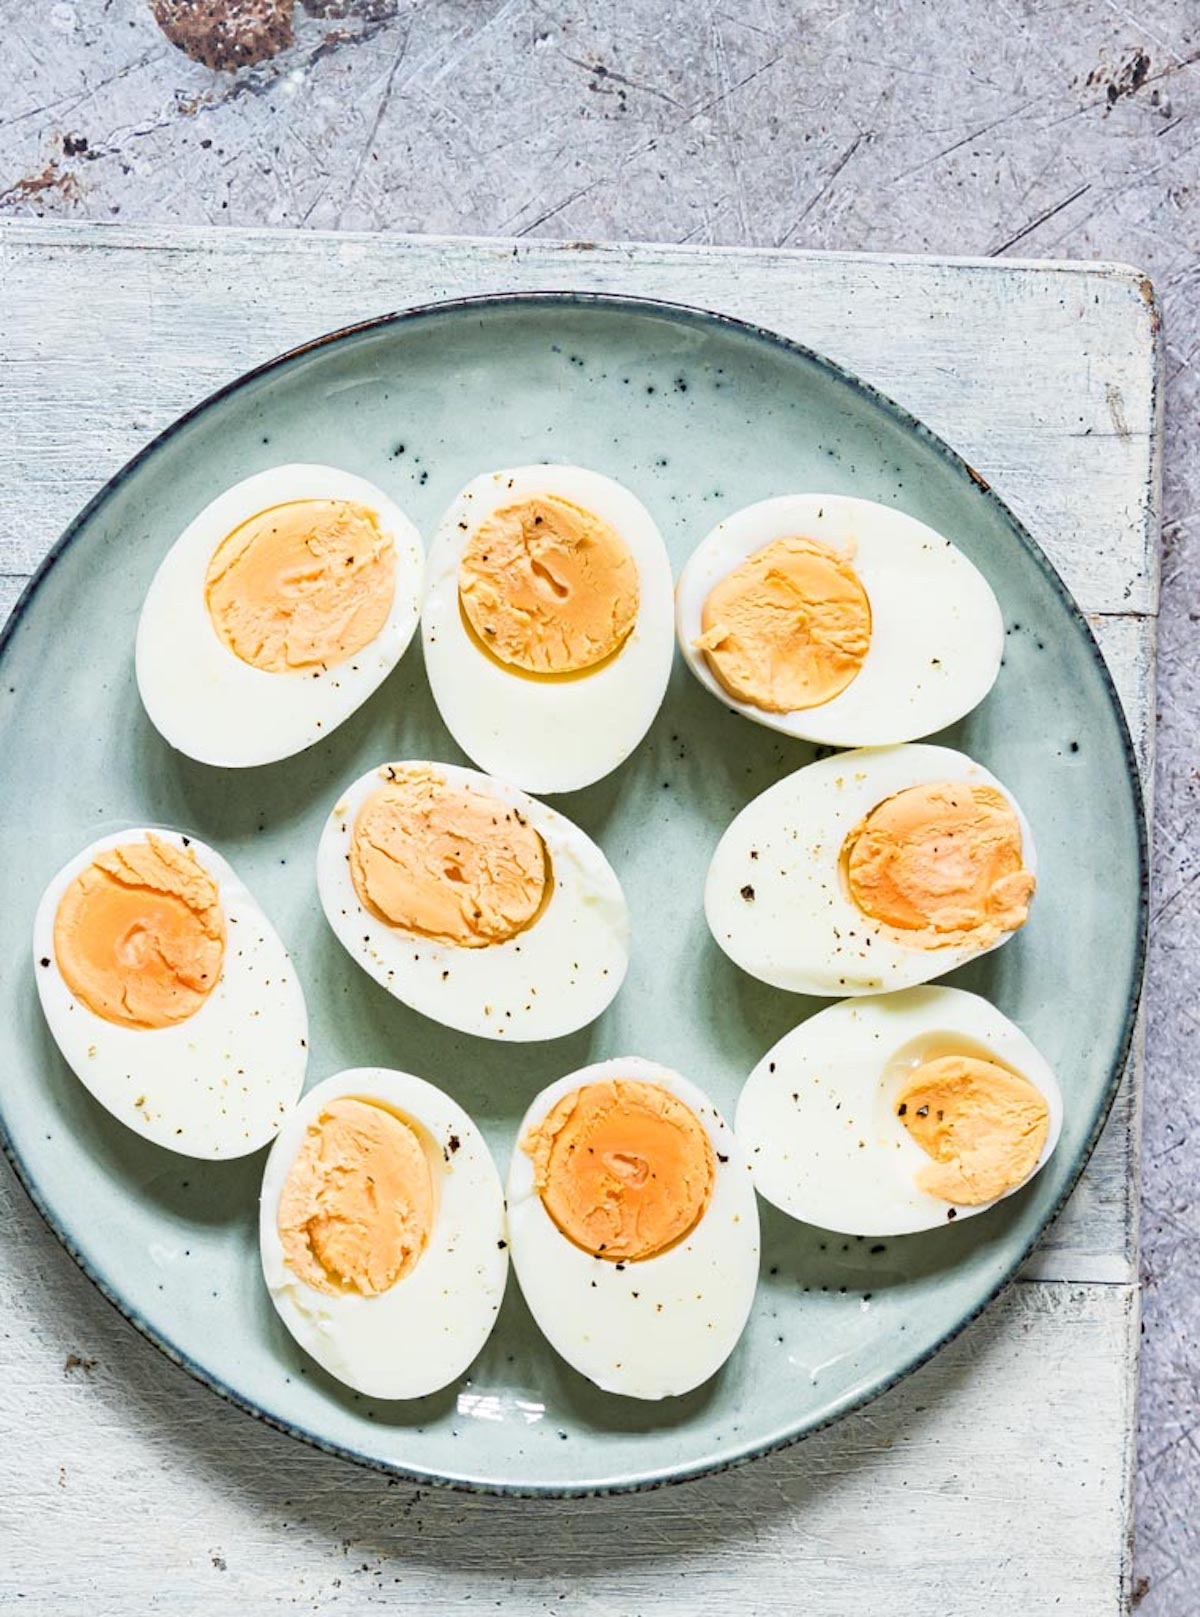 the finished instant pot hard boiled eggs served on a ceramic plate